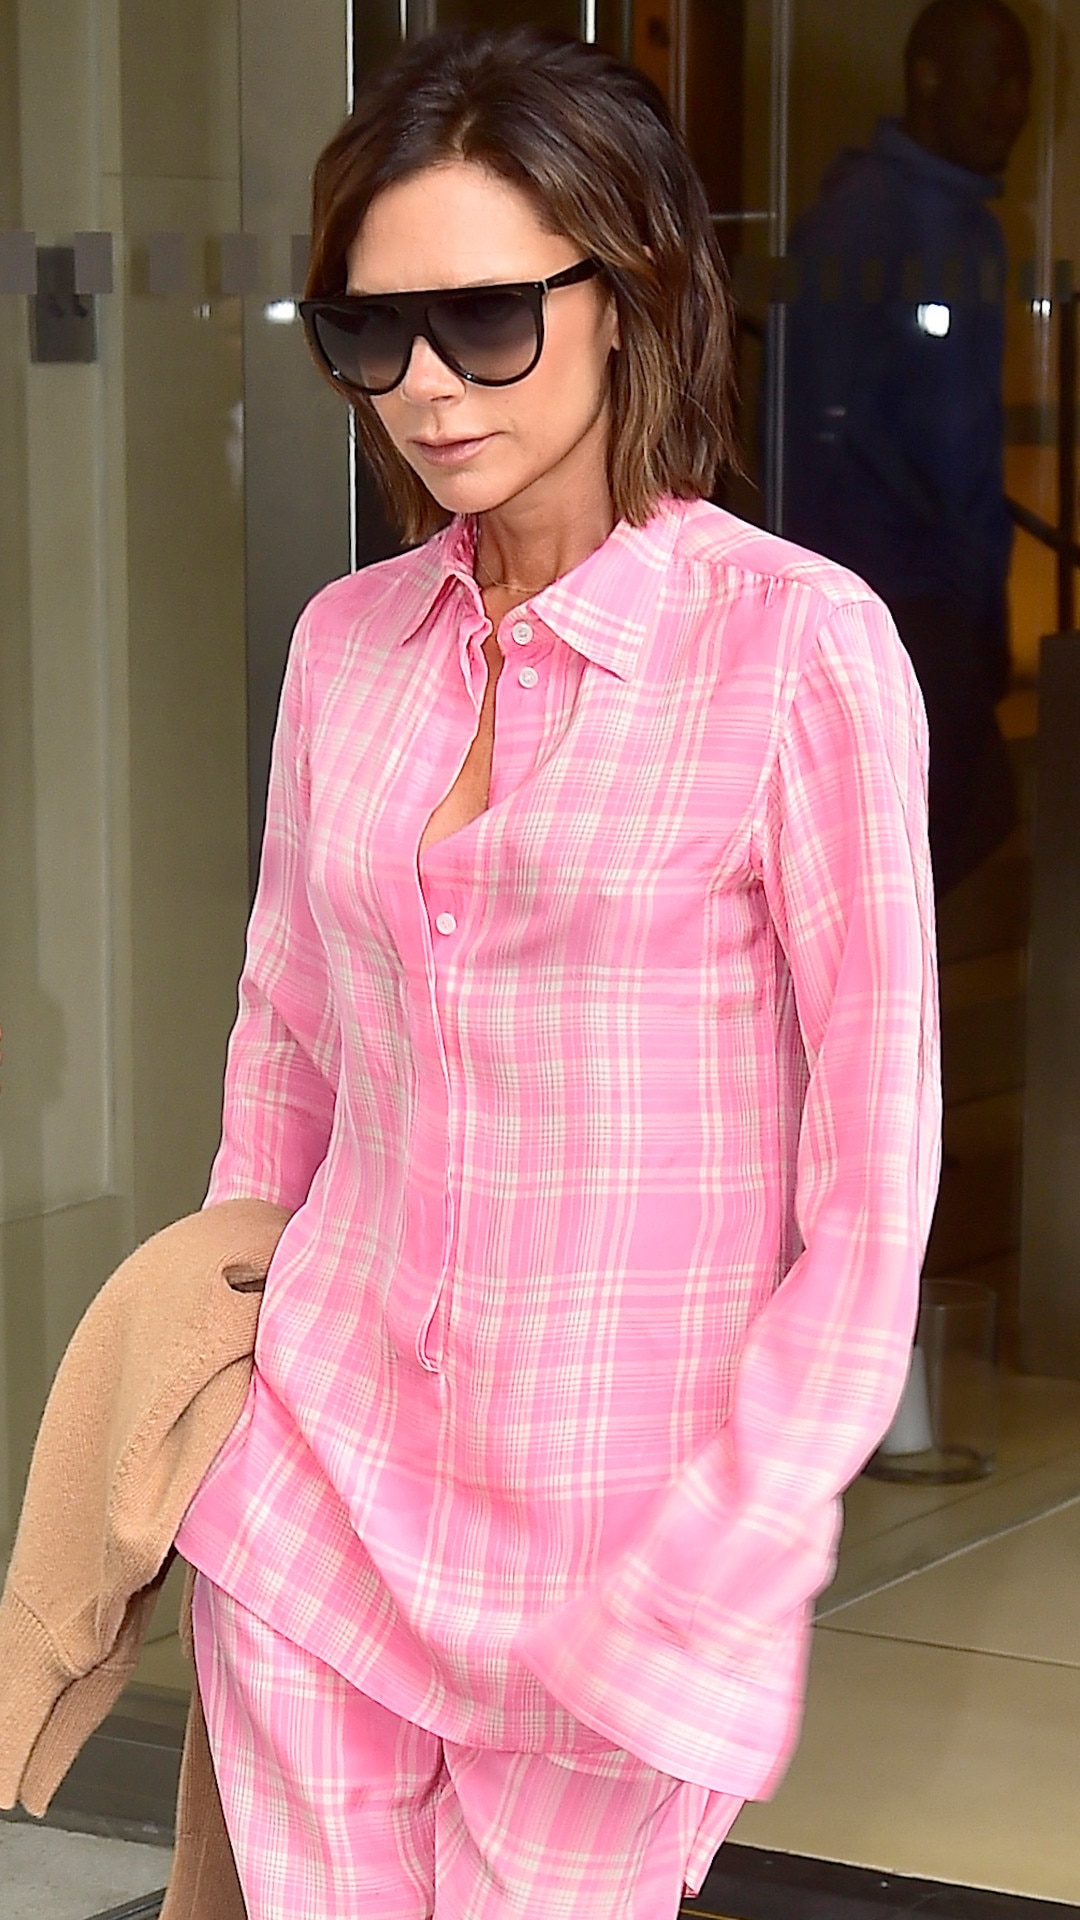 Photo #789304 from Victoria Beckham Is Pretty in Pink PJs | E! News